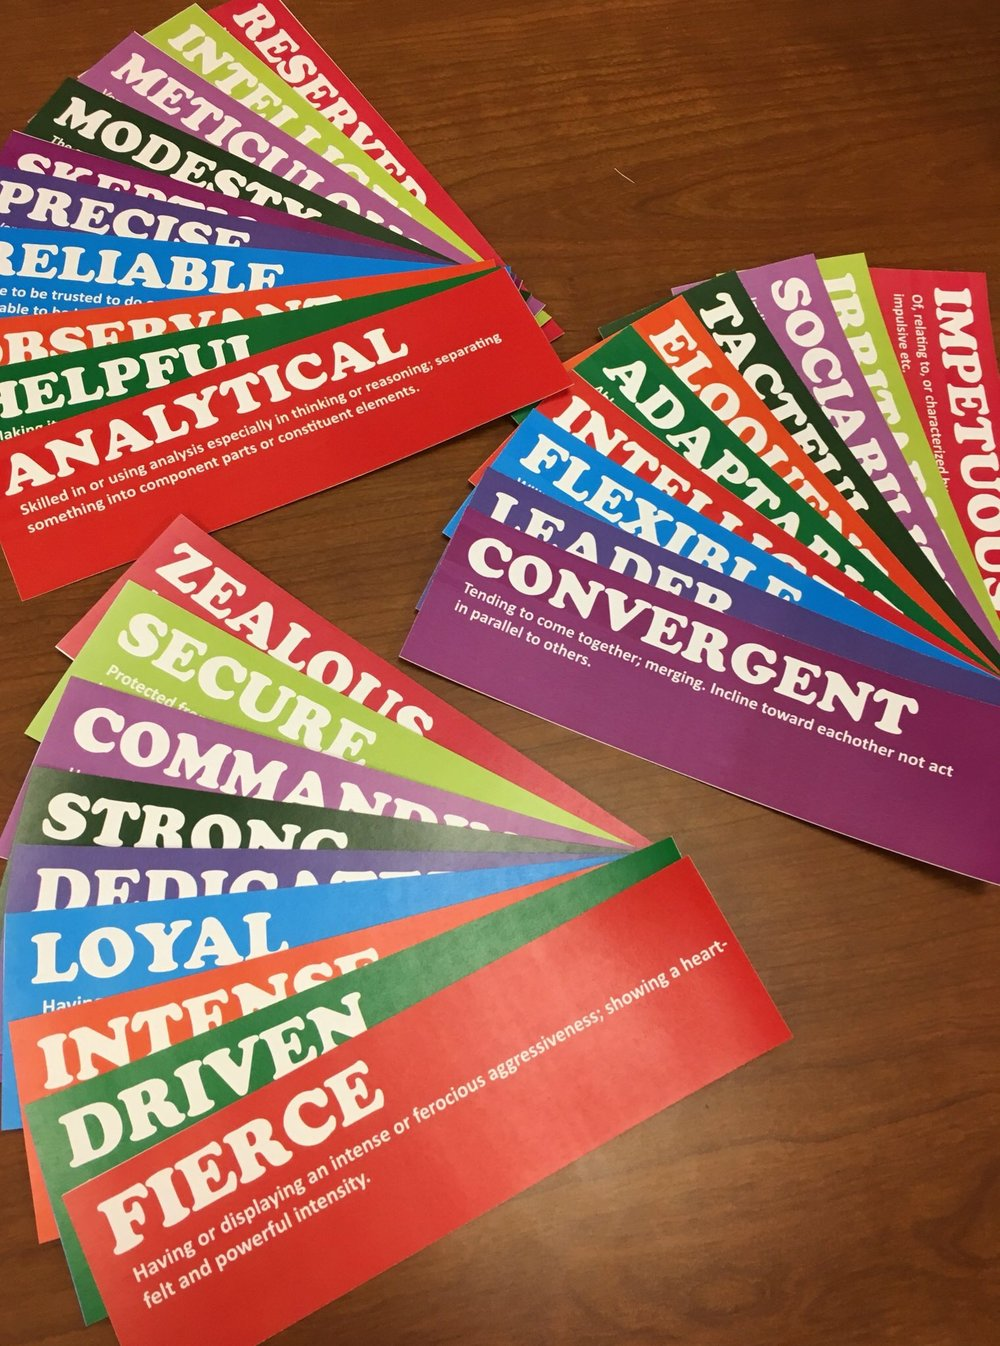 - One of my most successful team building activities was an attribute card exercise revolving around each team members zodiac sign. I got everyones sign and printed these cards with each signs top 5 common attributes. The colors are randomized and there are some duplicates. As you can see in the image above I taped all of them onto a whiteboard and tasked everyone to identify what they thought were their own 5 cards. Afterwards I gave a description of each zodiac sign within the team, individual signs were unknown to everyone else. I then challenged everyone to match cards to each team member as a group. The last step was to identify which sign each member was which was incredibly successful even with one incorrect sign being used. To conclude the activity we spent time discussing what attributes were most present in each member and how it relates to our department. I then had everyone go around and comment on how important these attributes were to working together as a team and taking action to improve or continue working towards them. The cards also acted as great artifacts that most people posted in their cubicle reminders.